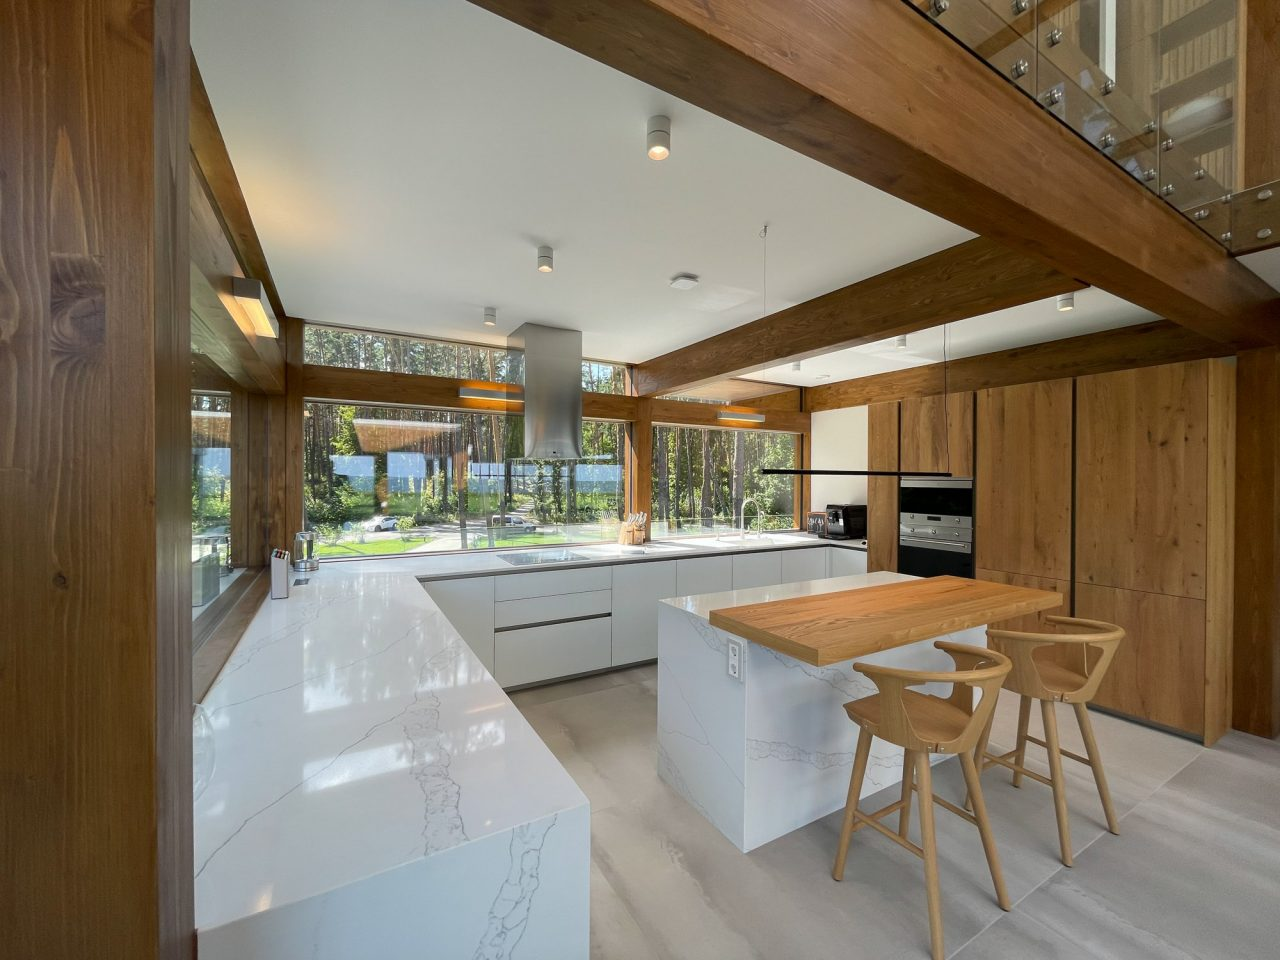 Hlass_house_KAGER - Hurii_11